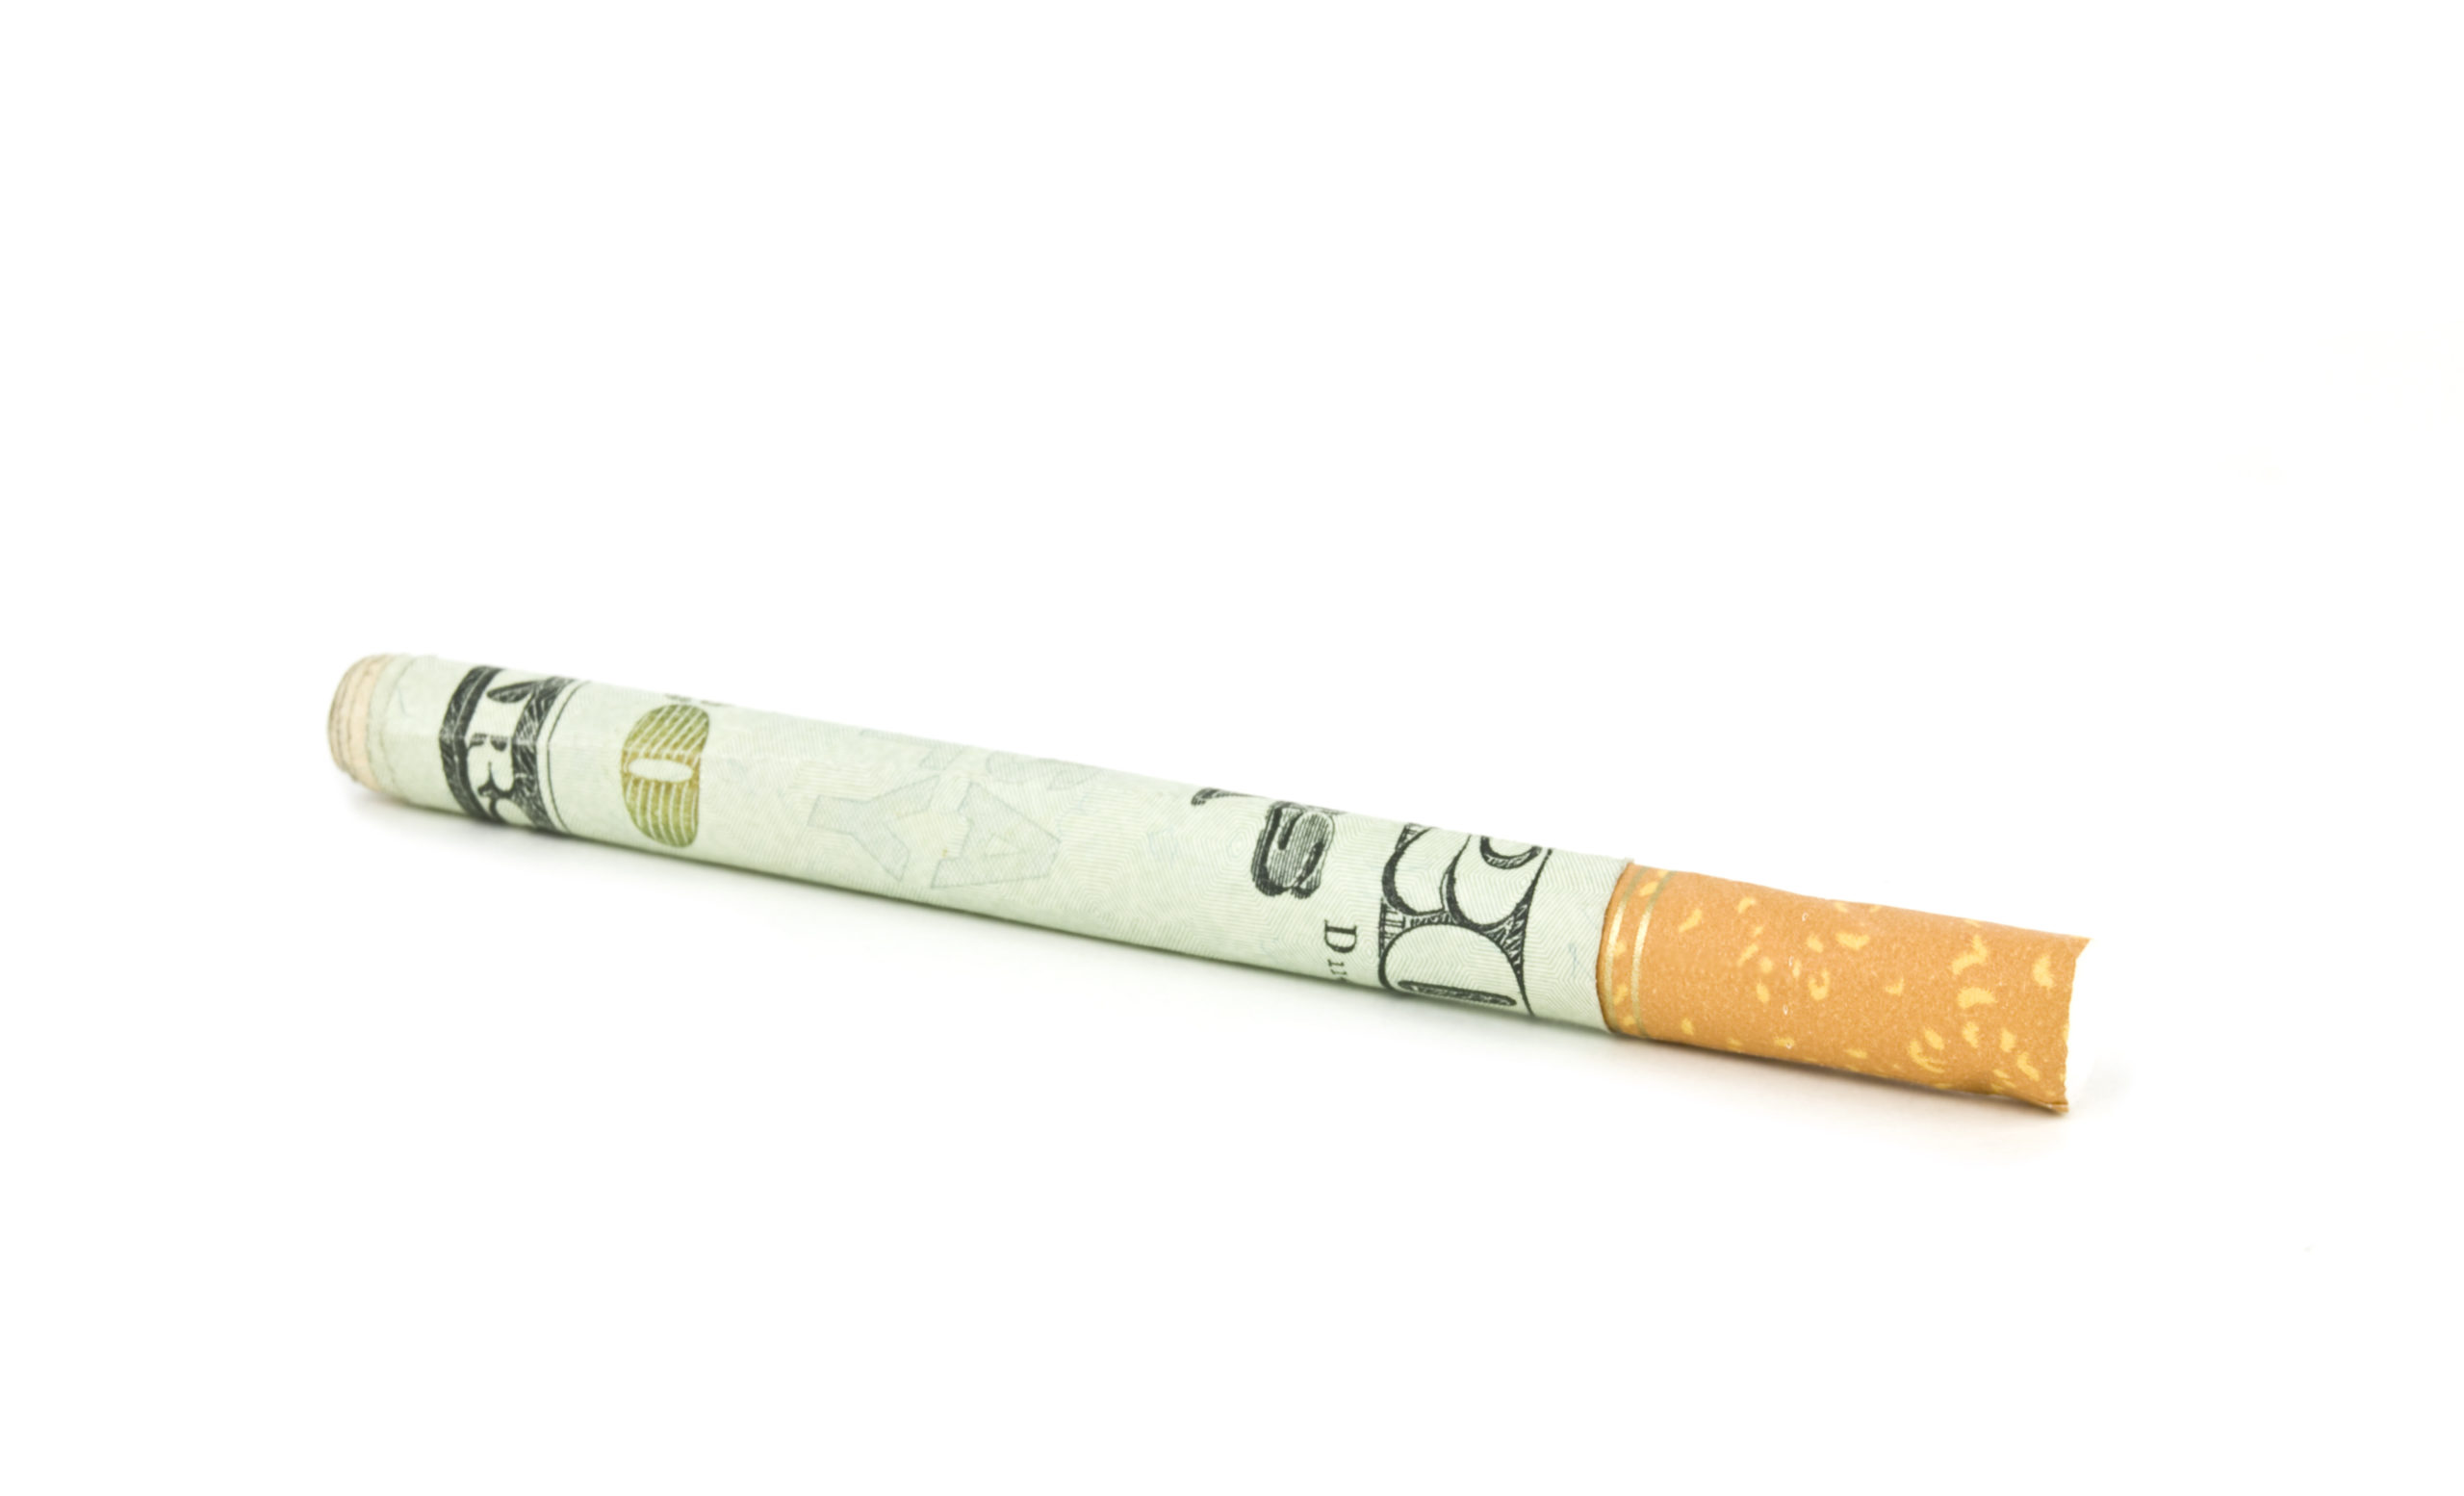 everyday economics and how cigarette taxes create smuggling incentives